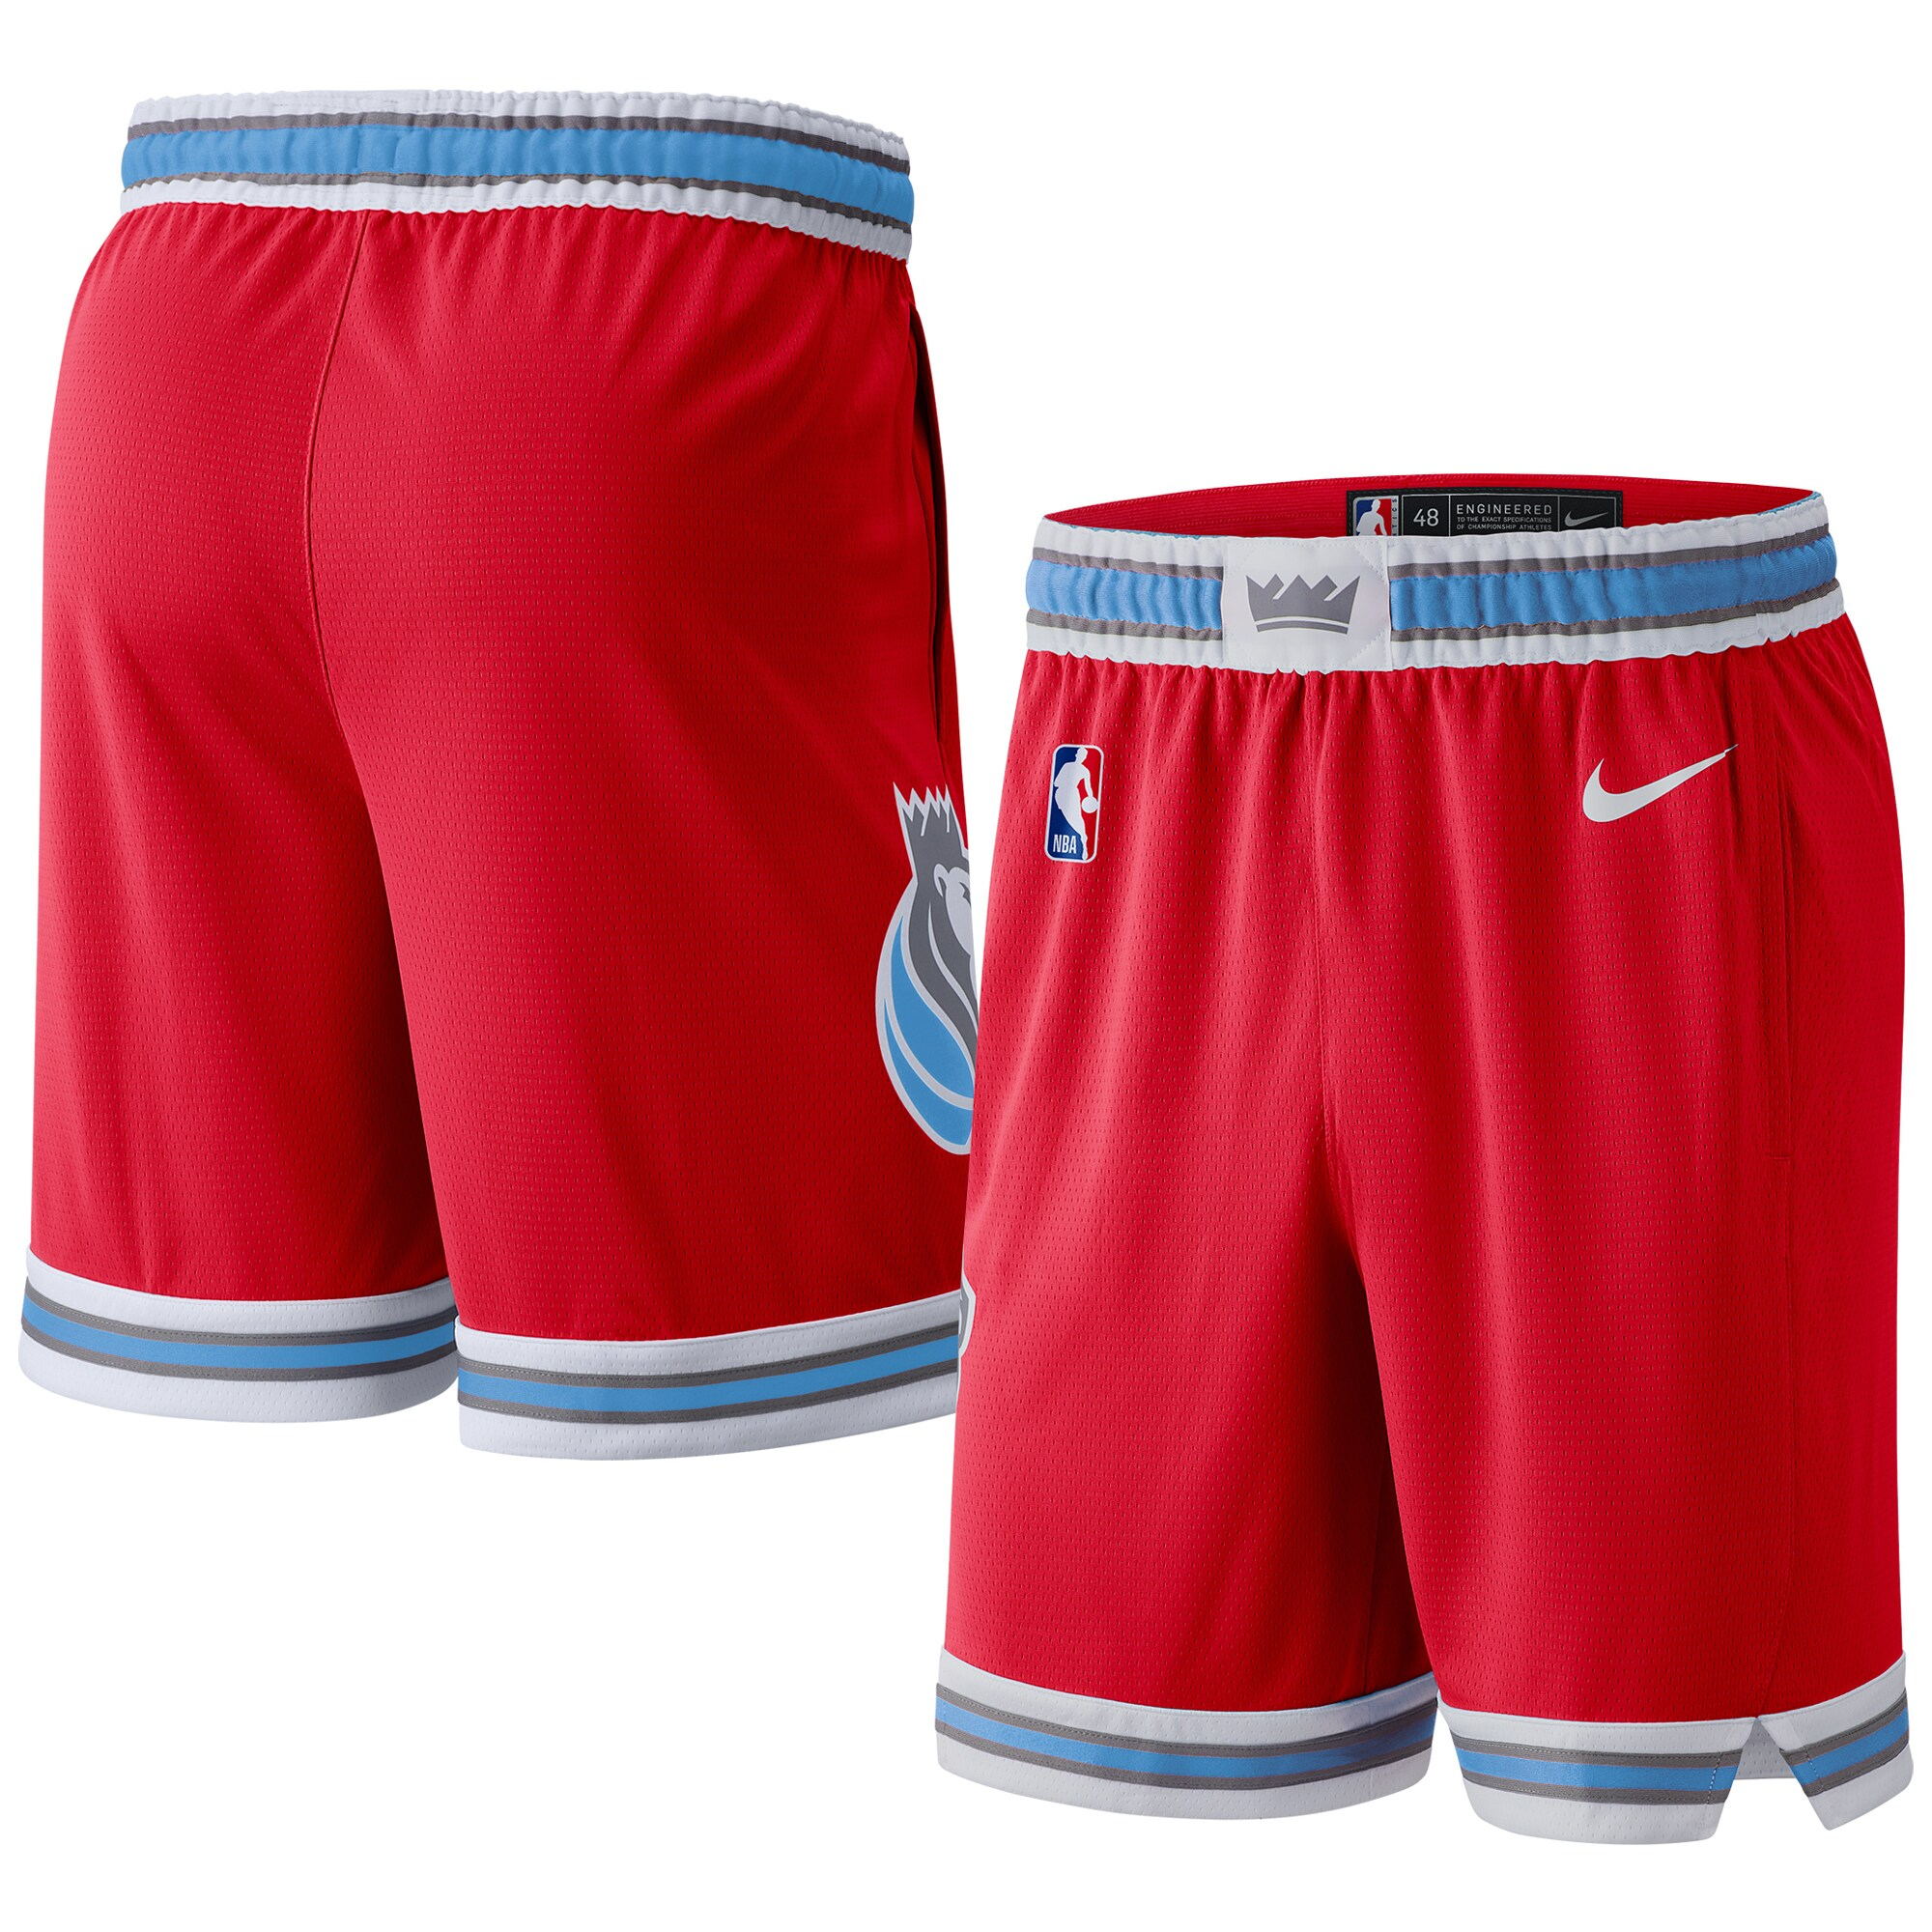 Sacramento Kings Nike 2019/20 City Edition Swingman Shorts - Red